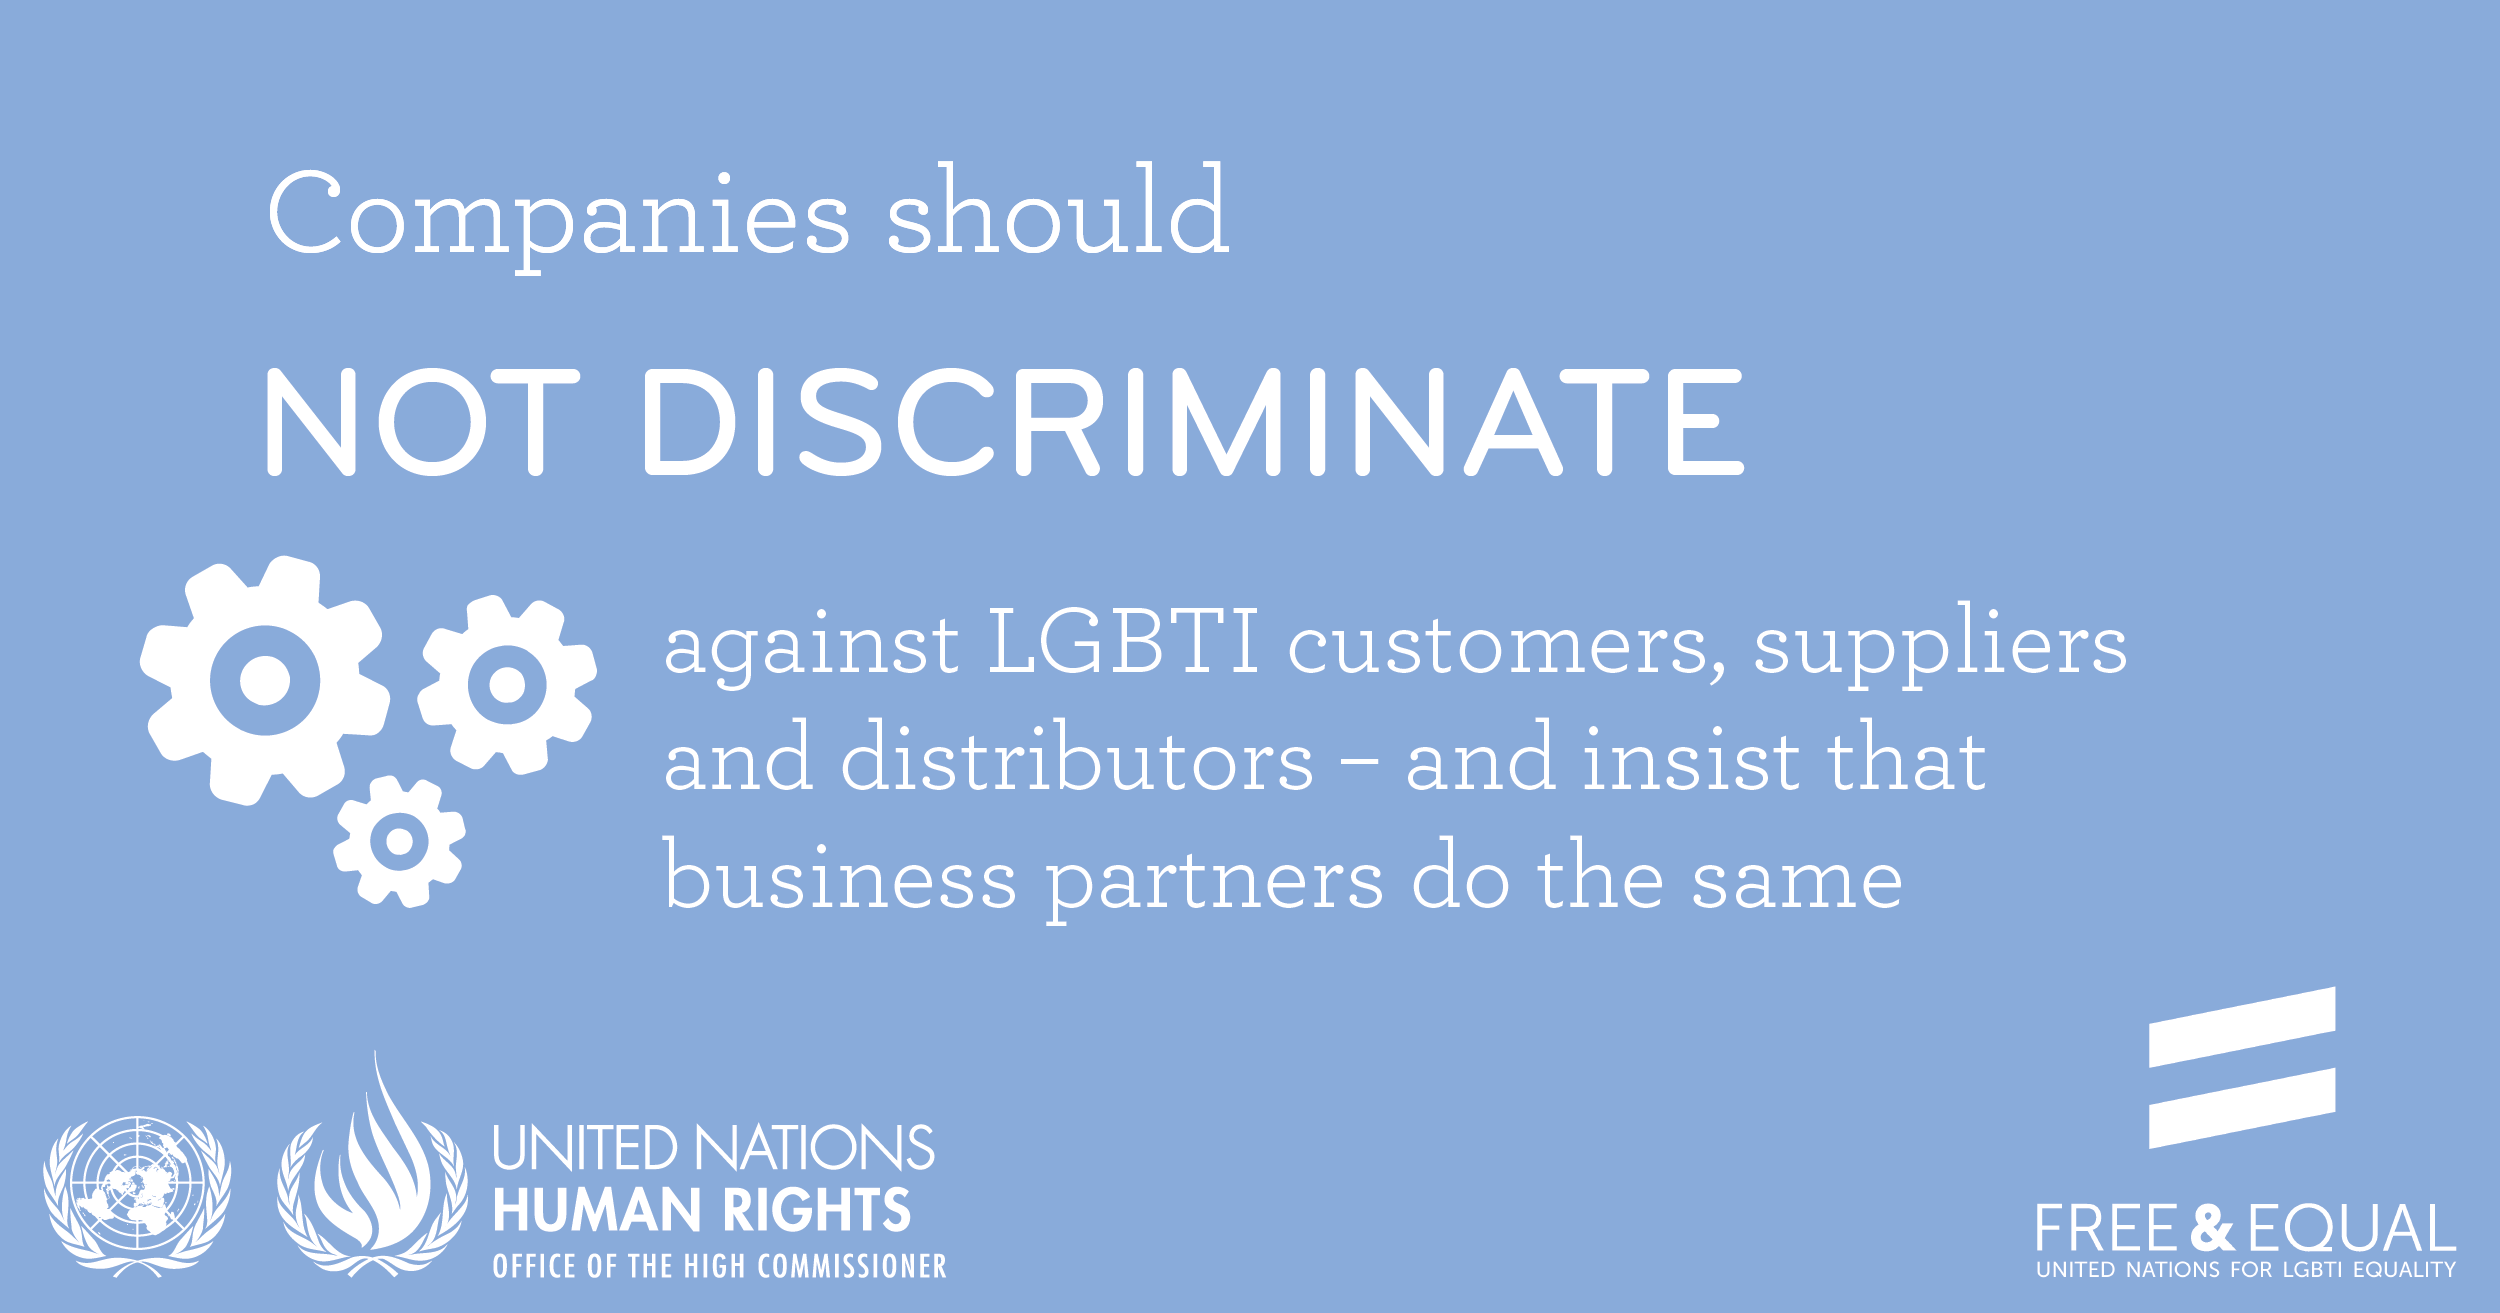 Companies should prevent human rights violations against LGBTI customers, suppliers and distributors – and insist that suppliers do the same.